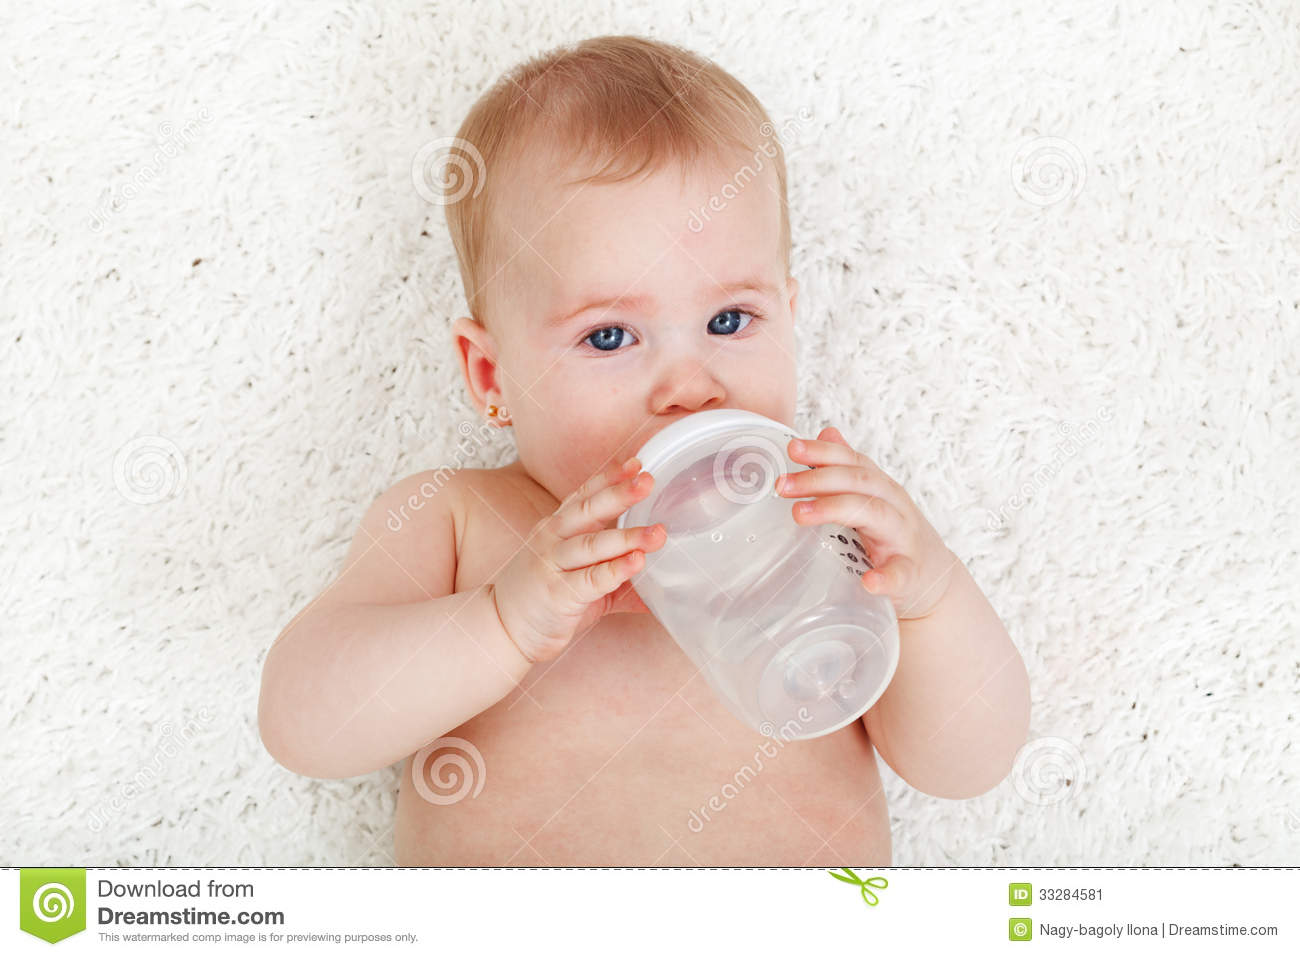 Baby Girl Drinking Water Stock Image - Image: 33284581